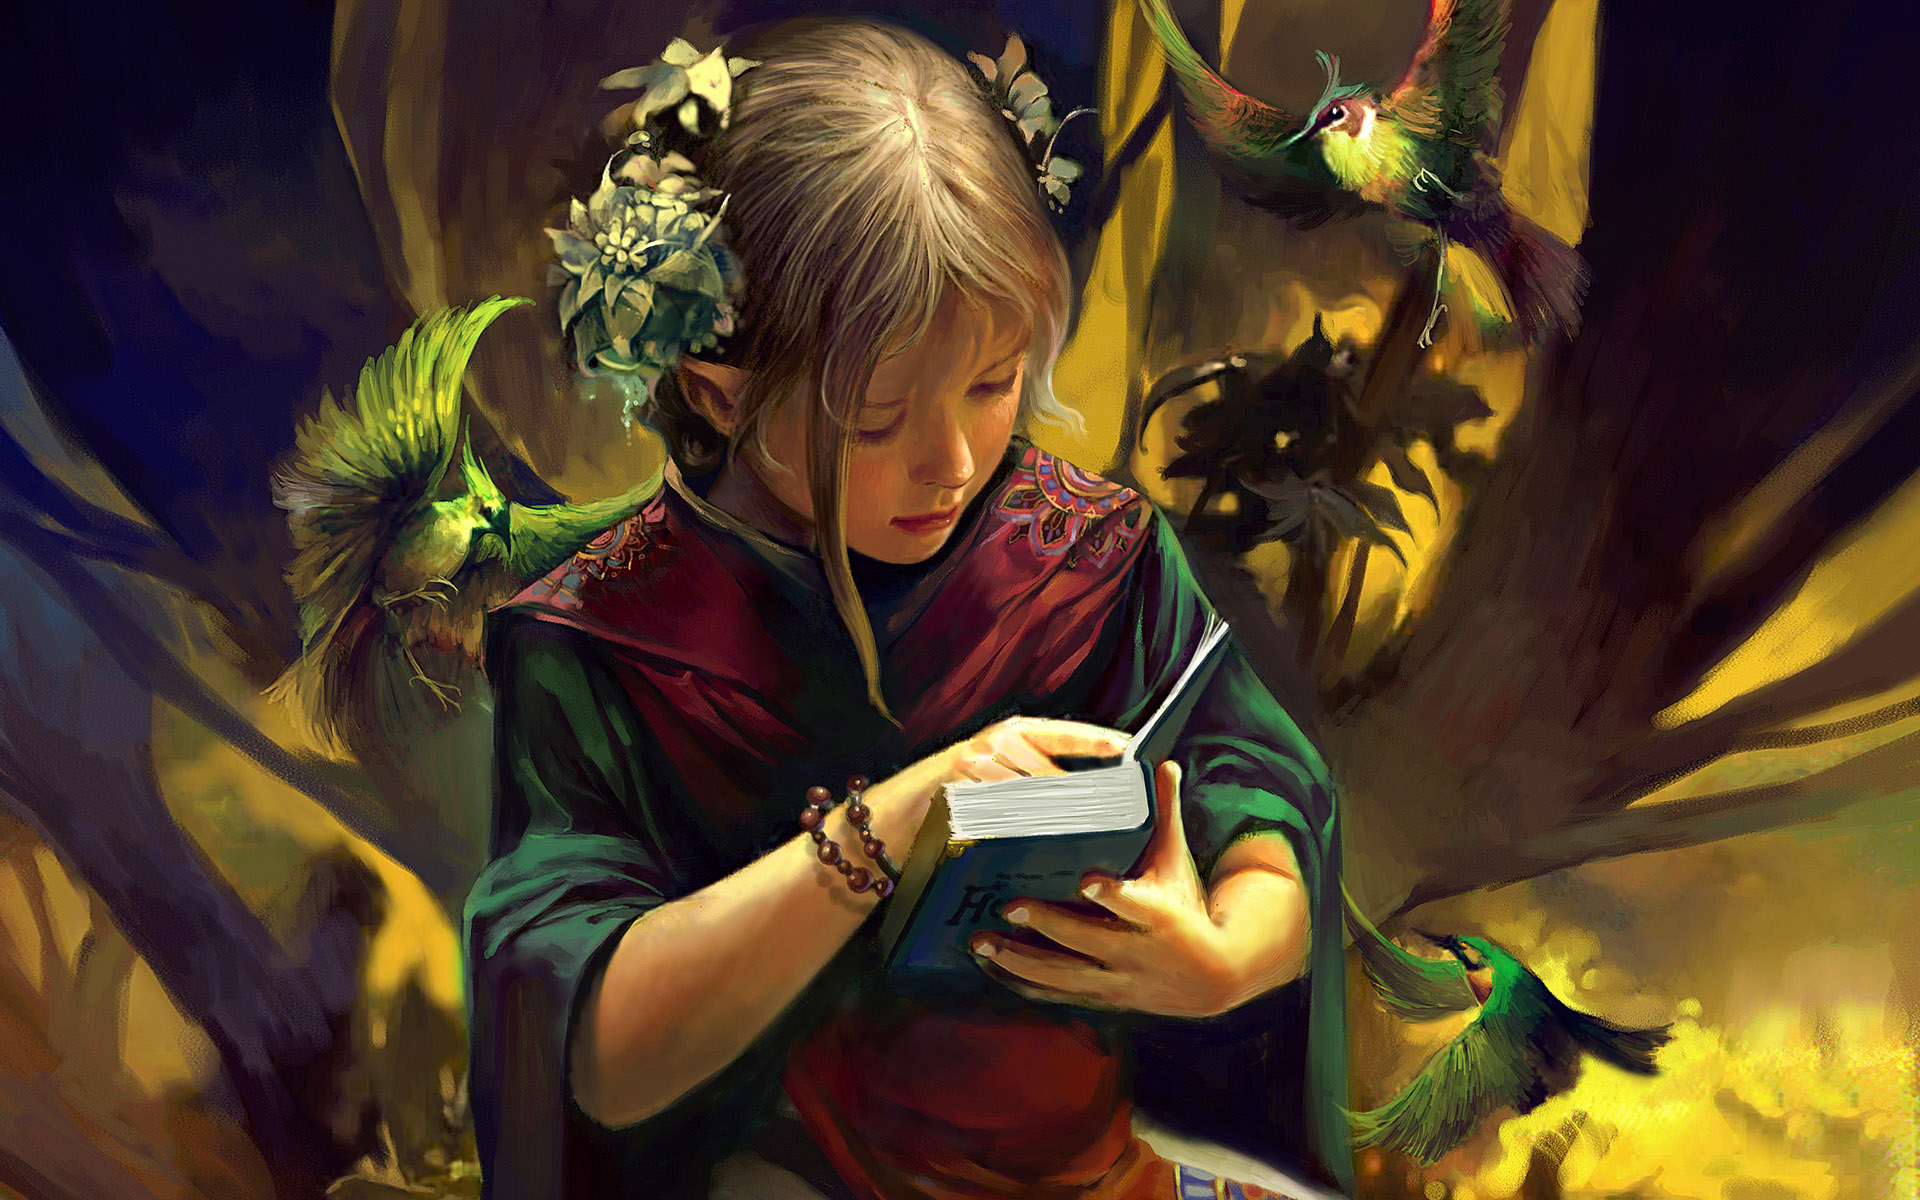 http://anime.com.ru/modules/coppermine/albums_for_animecomru/Wallpapers/Collection_all_themes/Oboi_20_12_2009/Fantasy_girl_01/fantasy_girl_01_021_.jpg